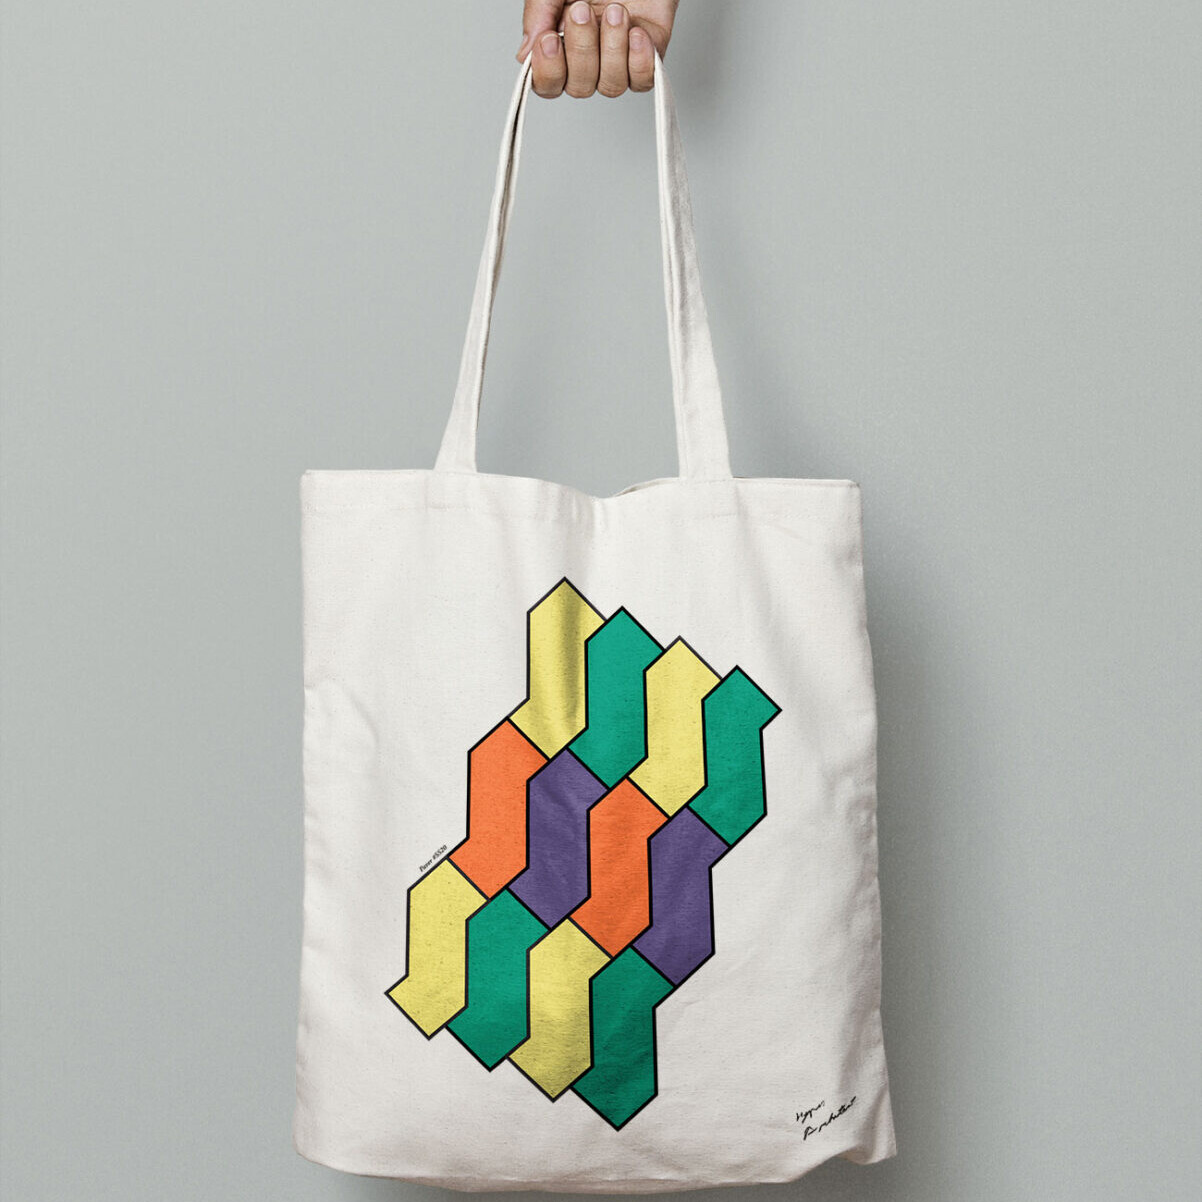 Hyperarchitects tote bag